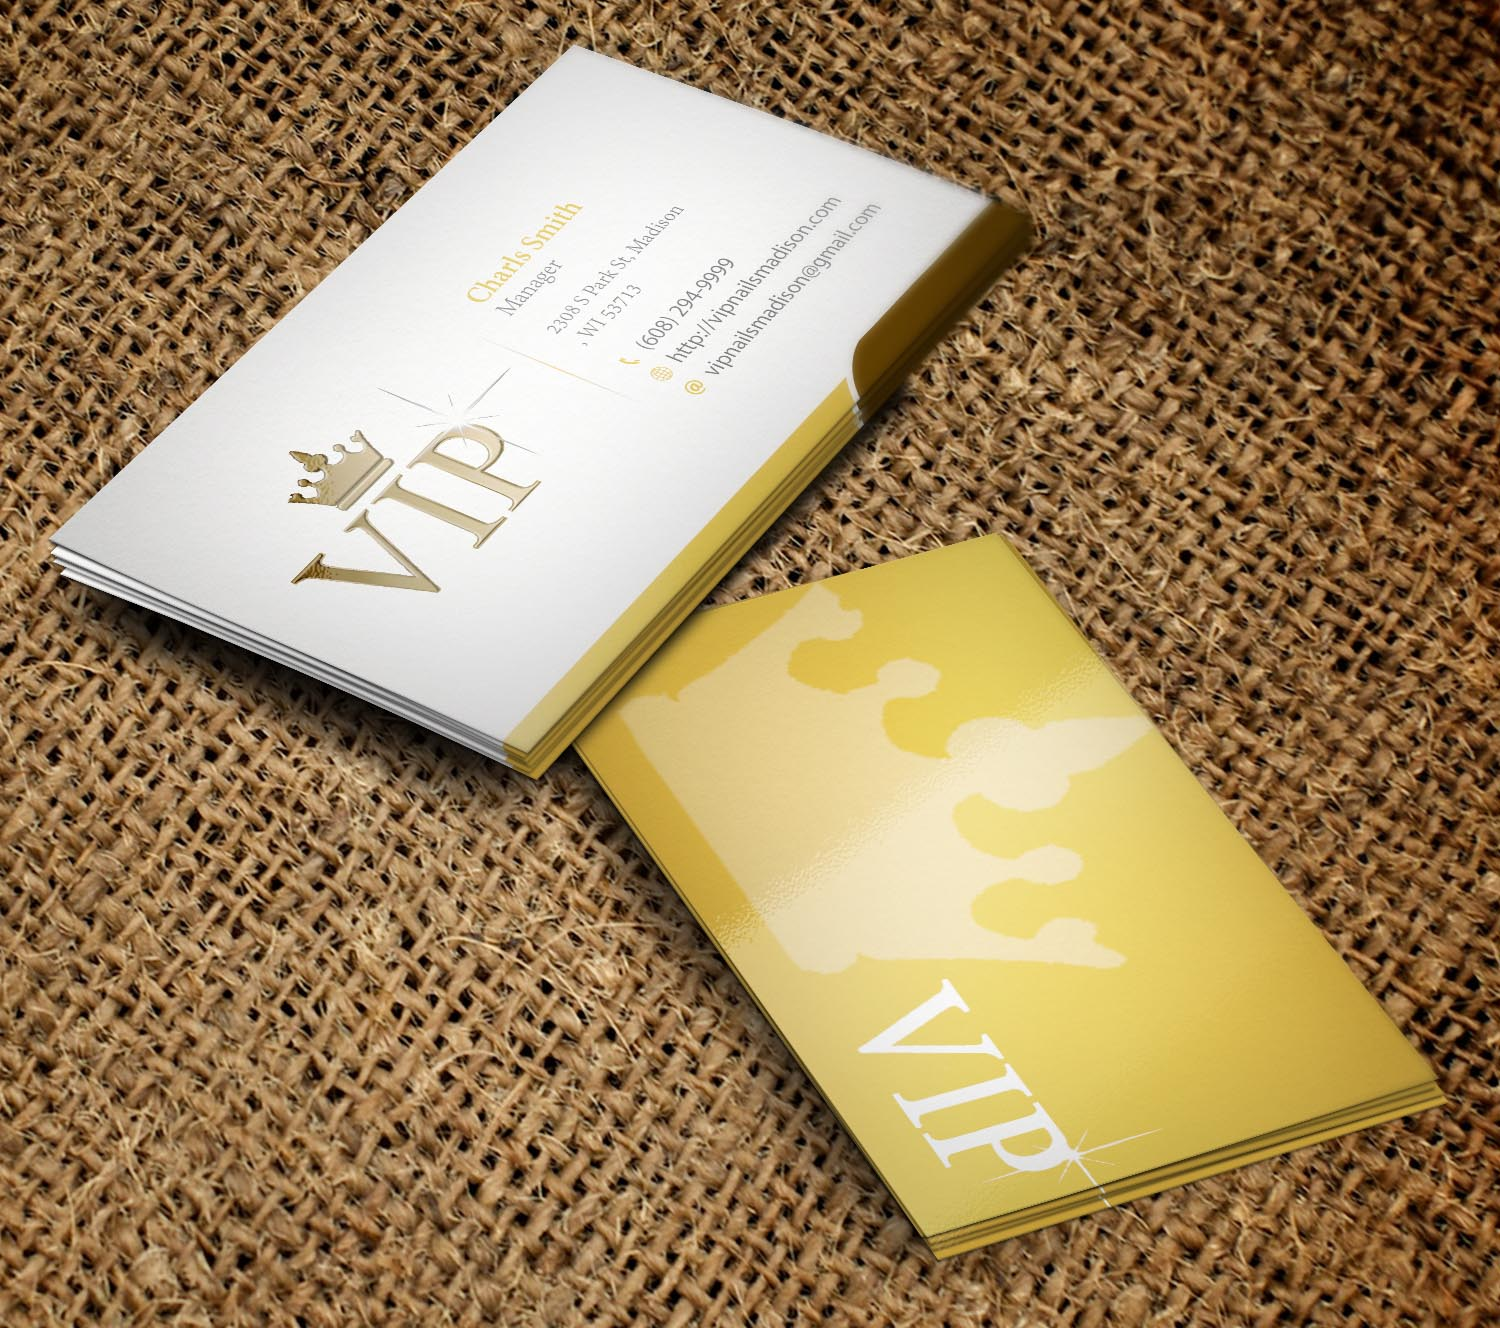 Elegant playful business card design for vip nails spa by business card design by primarydesigner2k9 for vip nails spa business card for nail salon reheart Choice Image